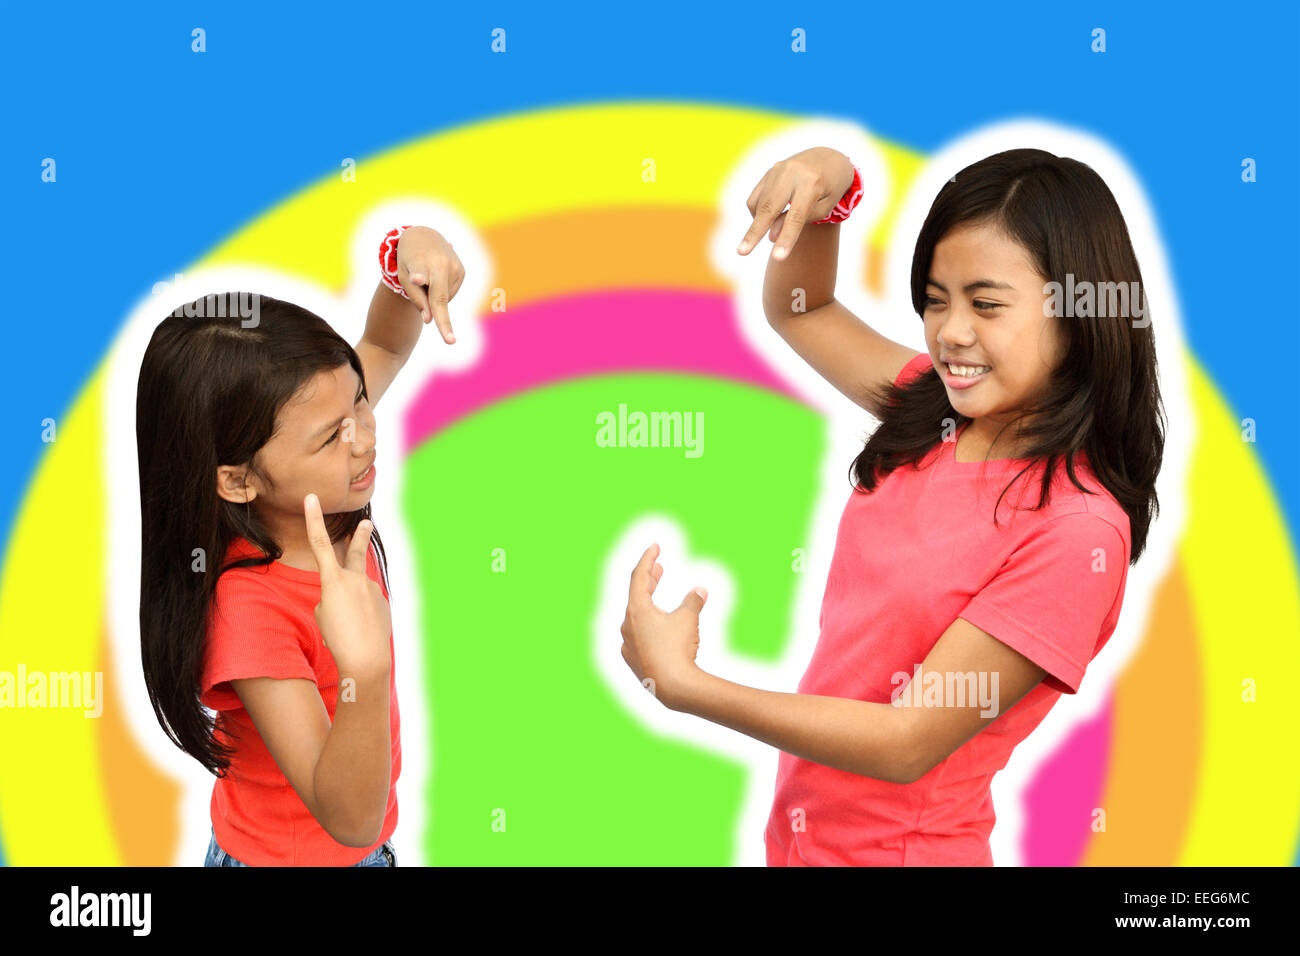 Teen young lady showing her sister how to make a cool dance moves - Stock Image